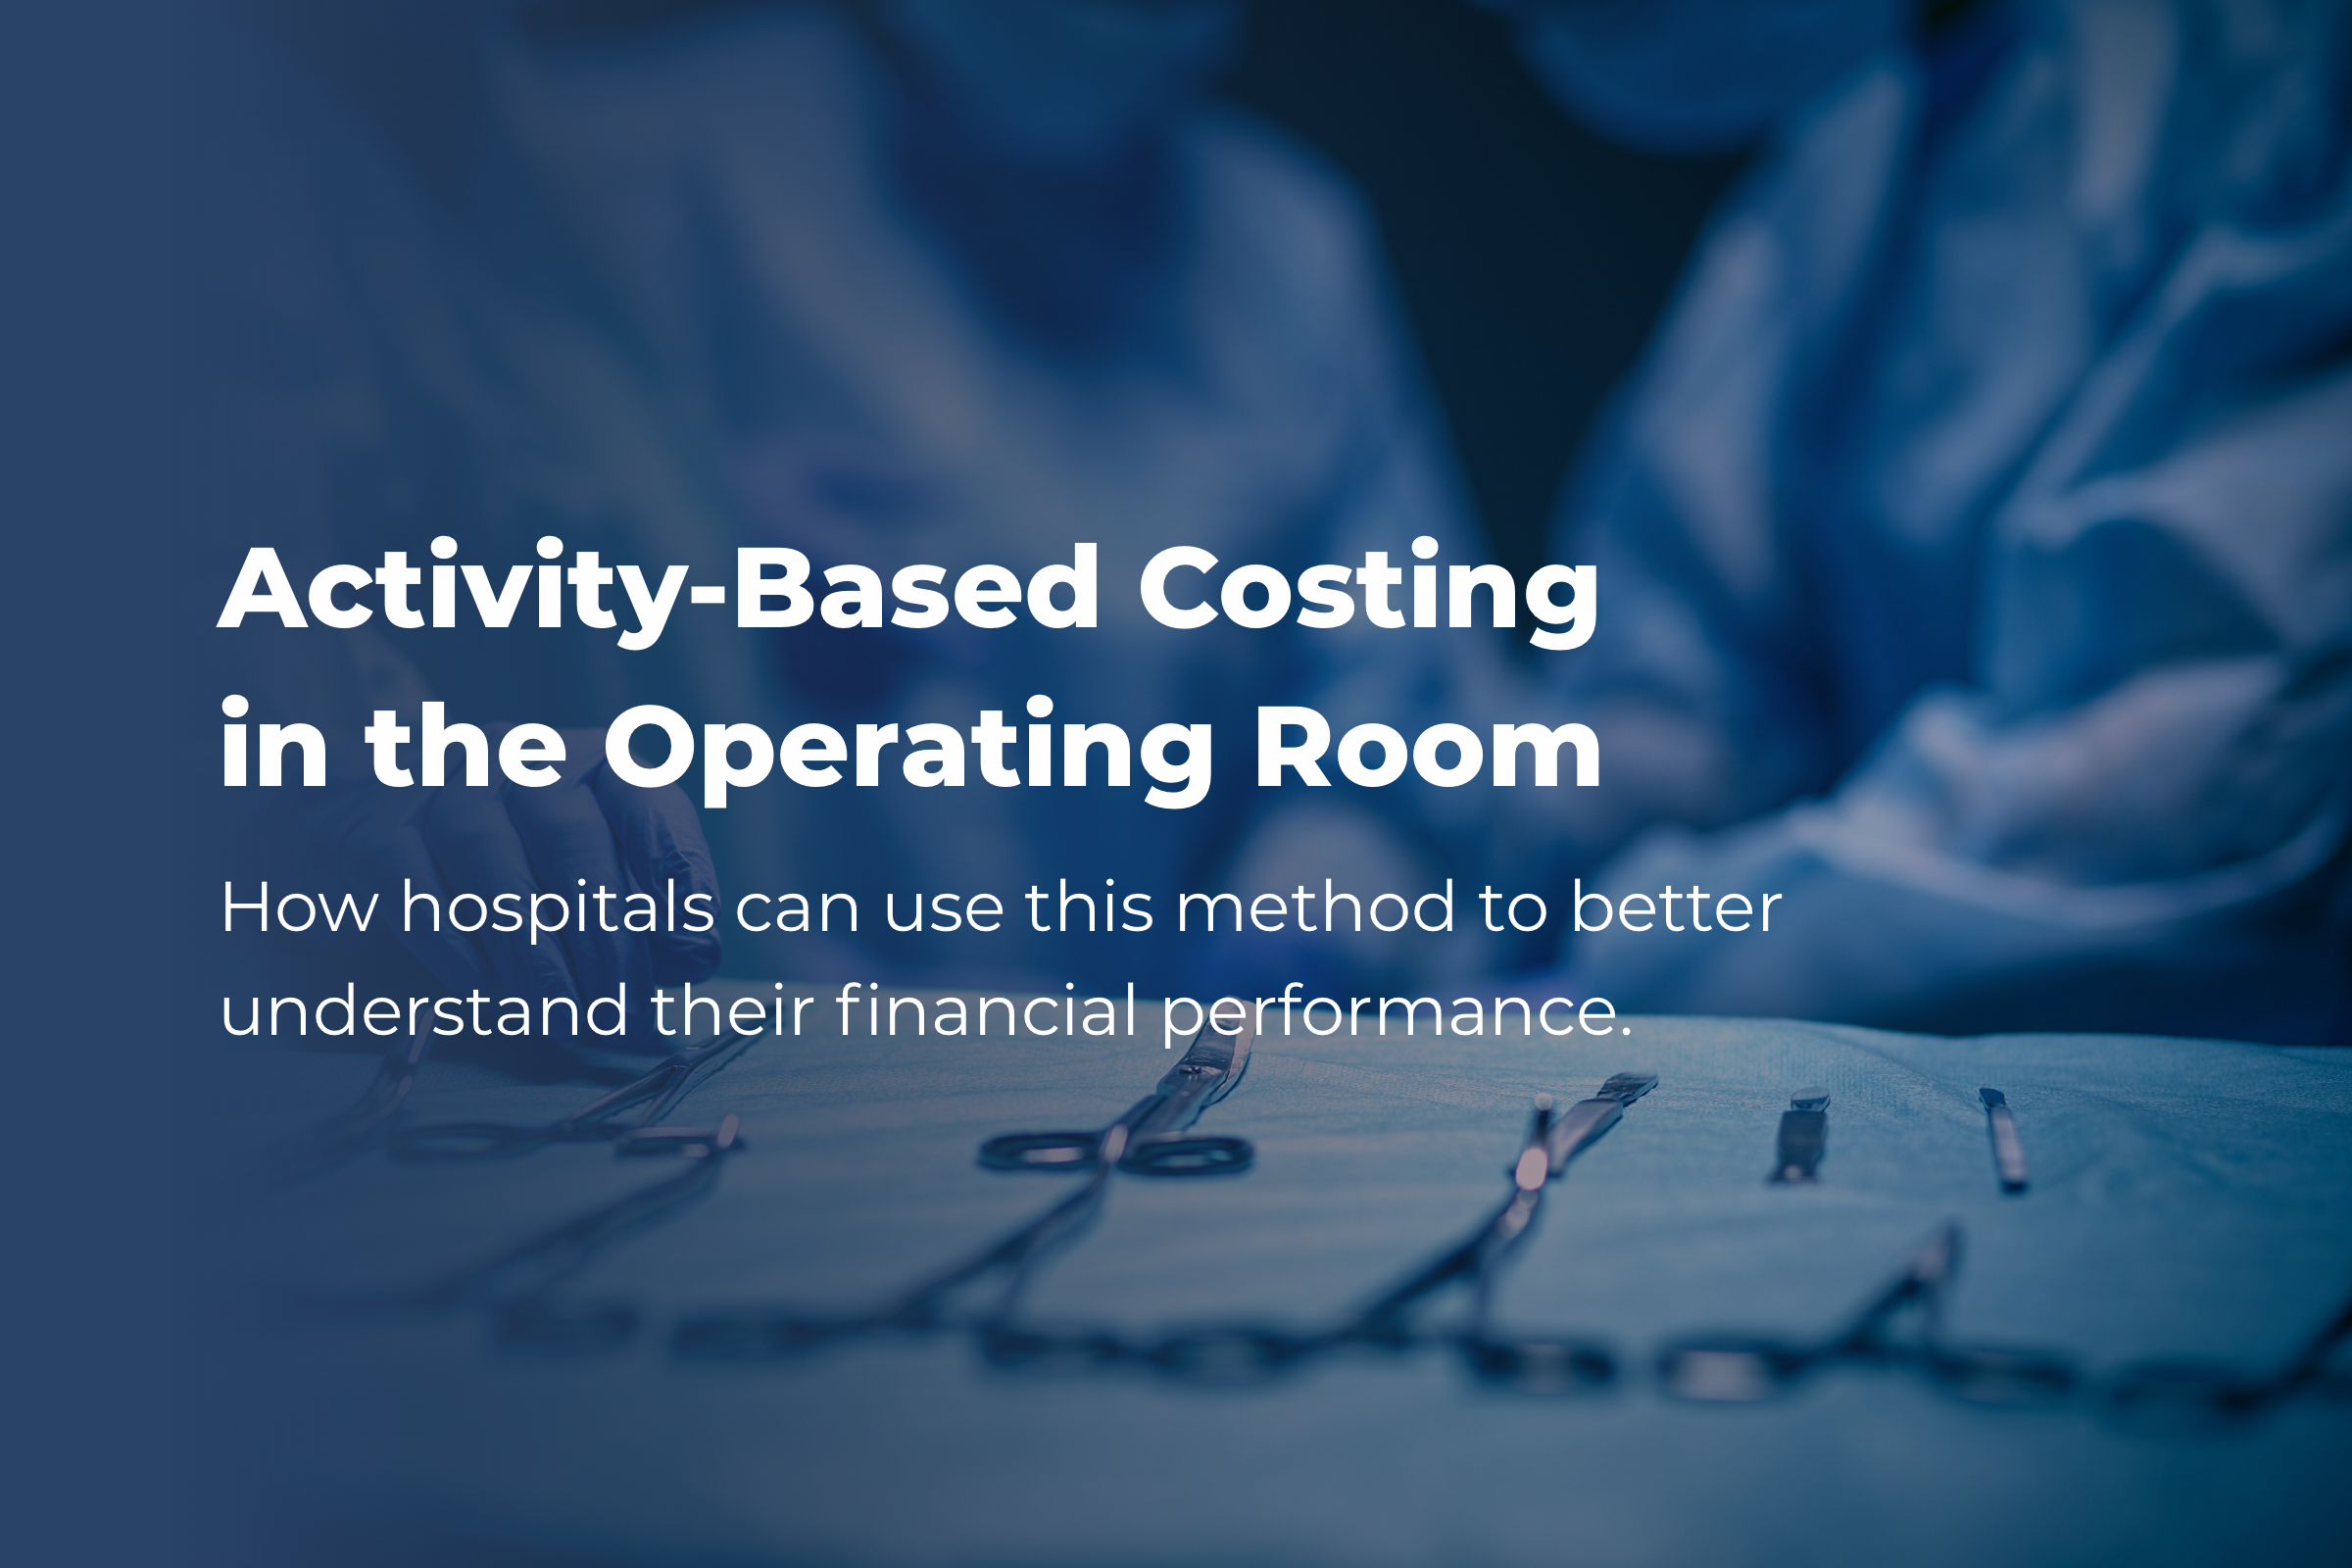 activity-based costing, healthcare, financial performance, healthcare, DEO